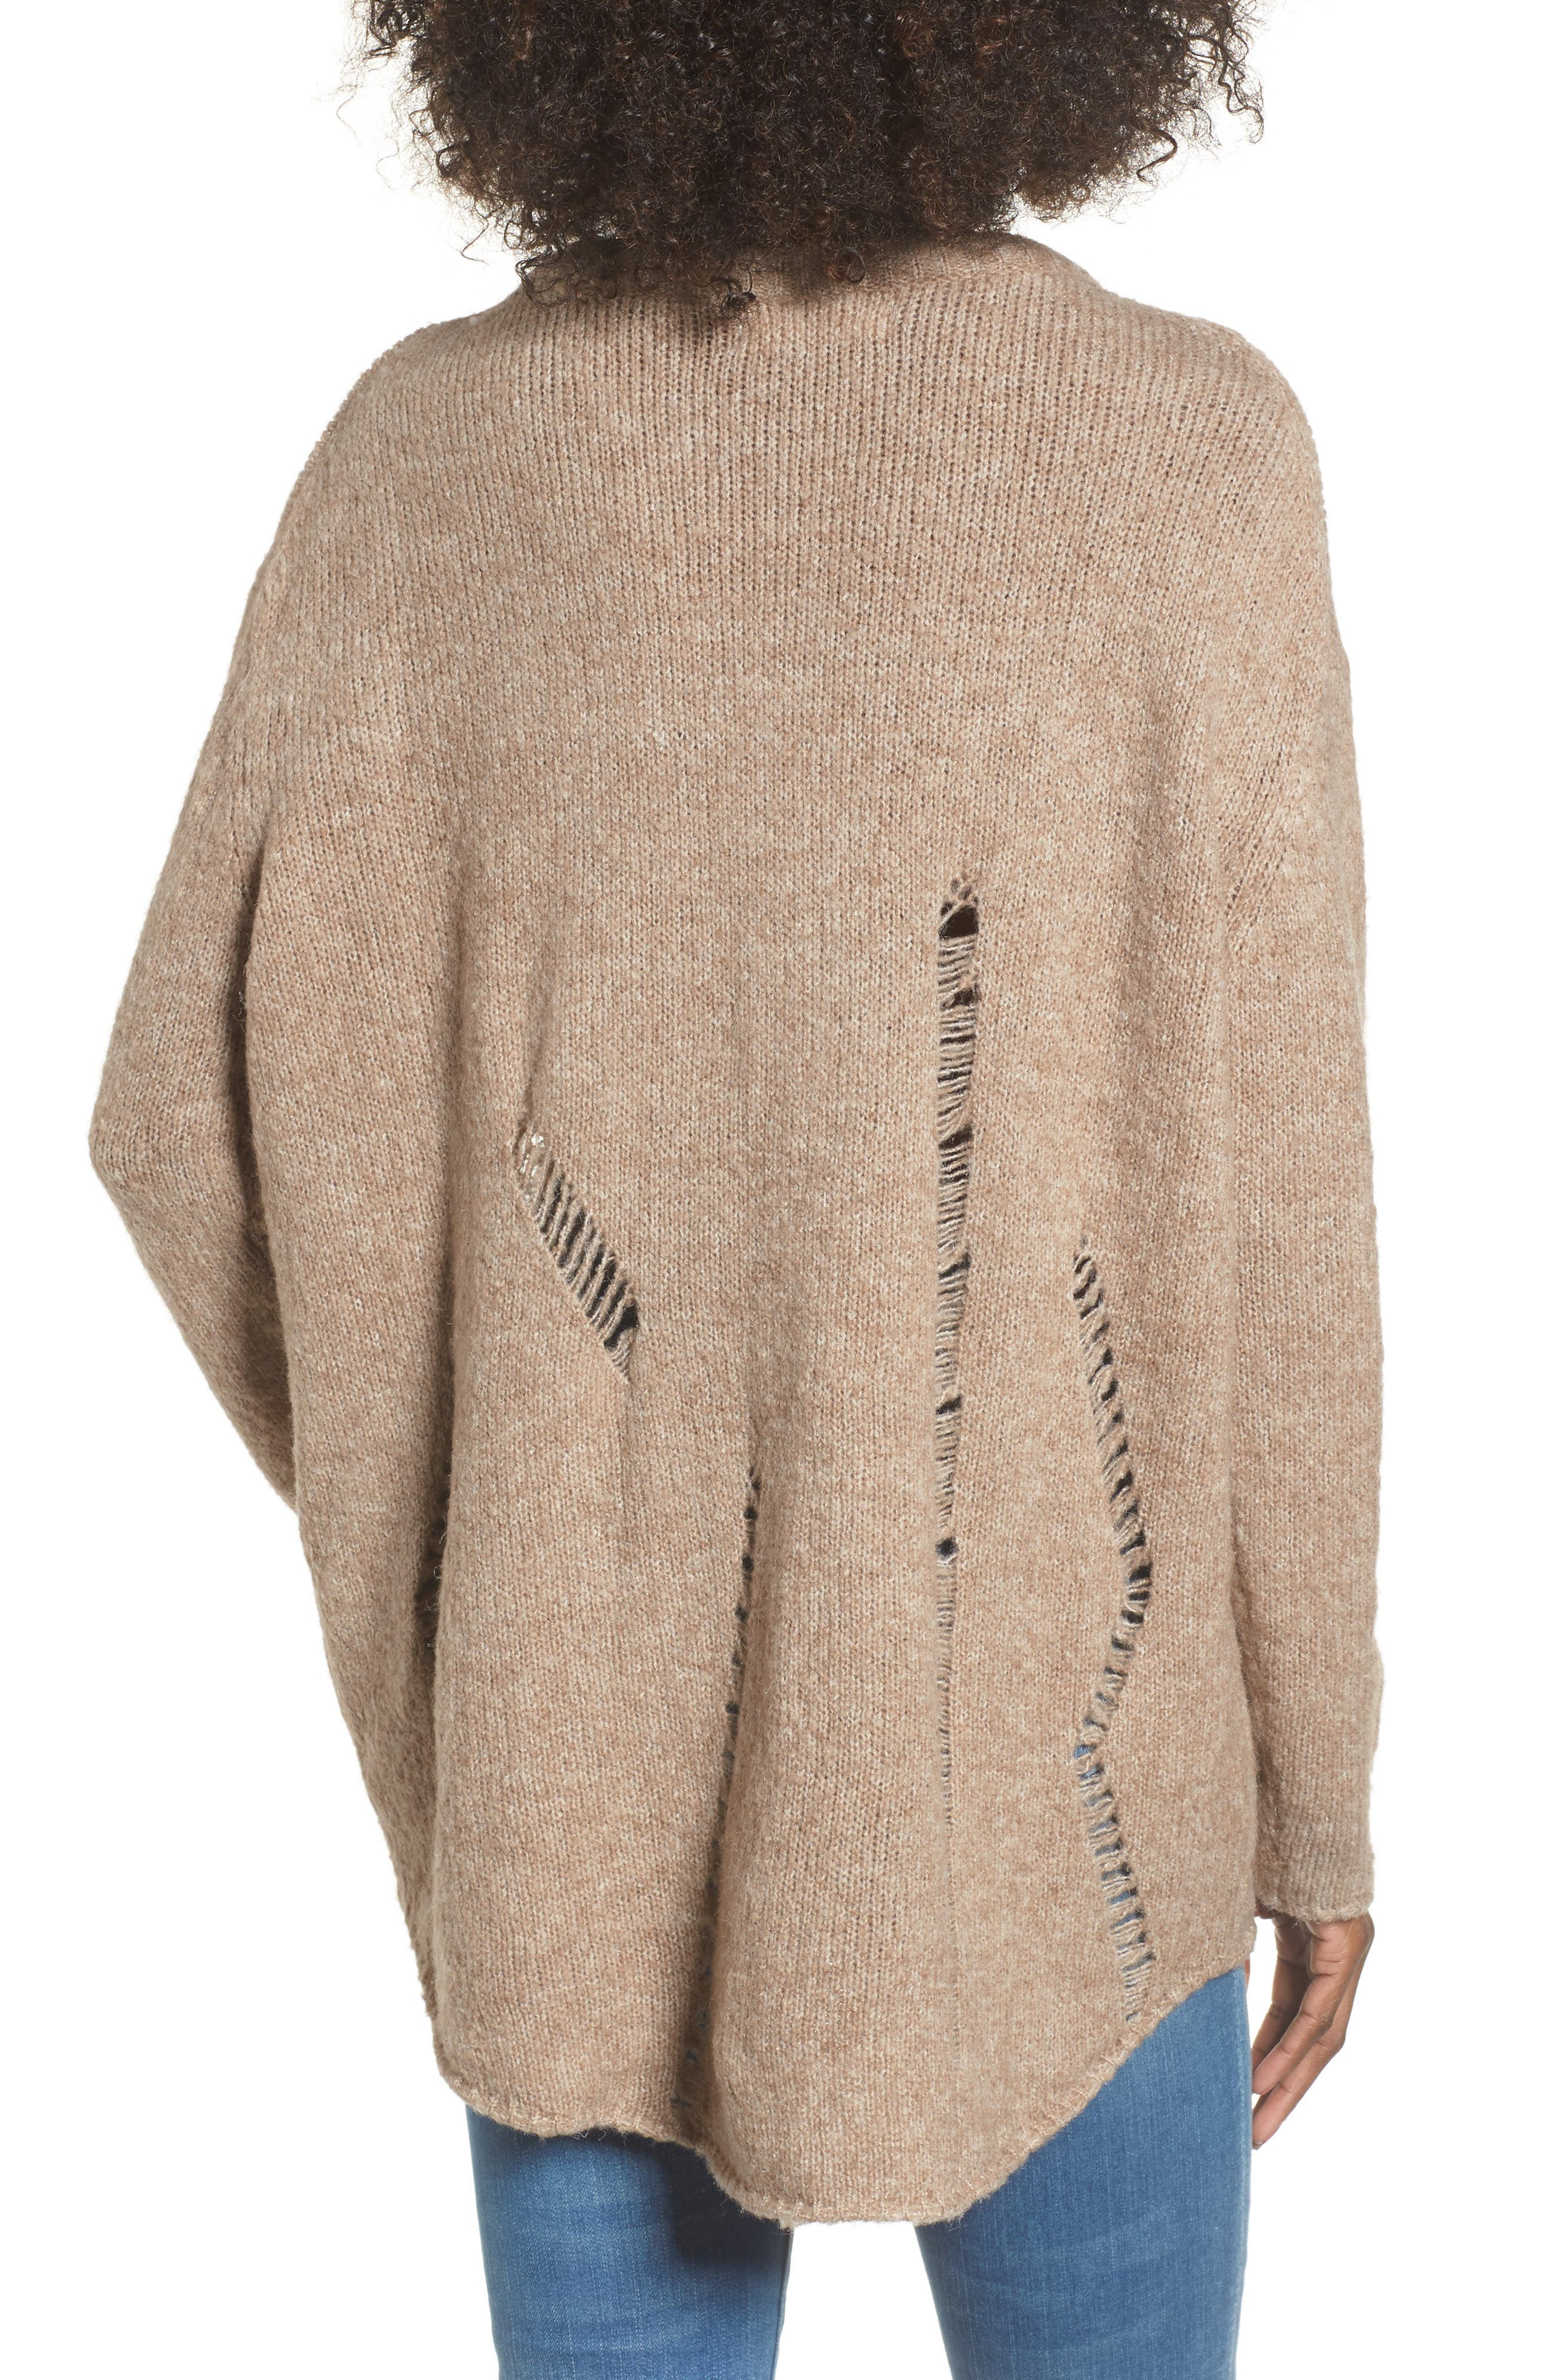 Destroyed Tunic Sweater,                             Alternate thumbnail 2, color,